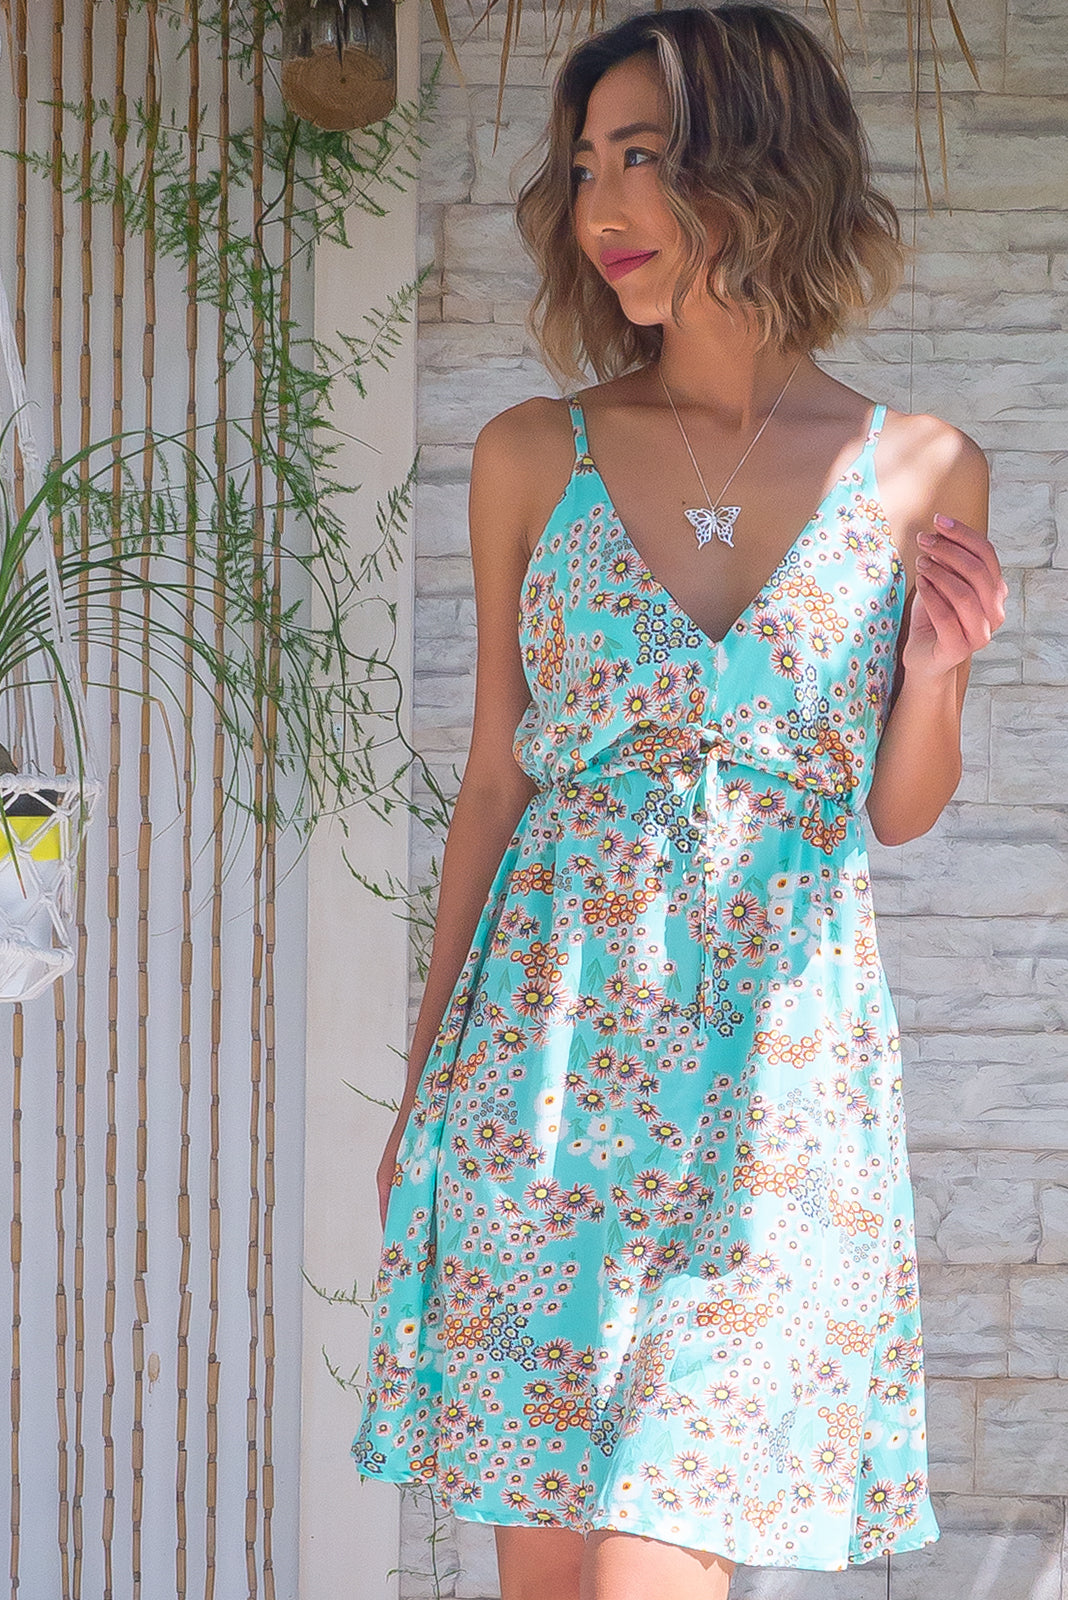 The Adora Sky Mint Mini Dress has V neck and back, elastic and drawstring under bust, adjustable, thin straps, side pockets, wavy, uneven hemline and 100% rayon in fresh, aqua/mint base with retro orange and white floral print.